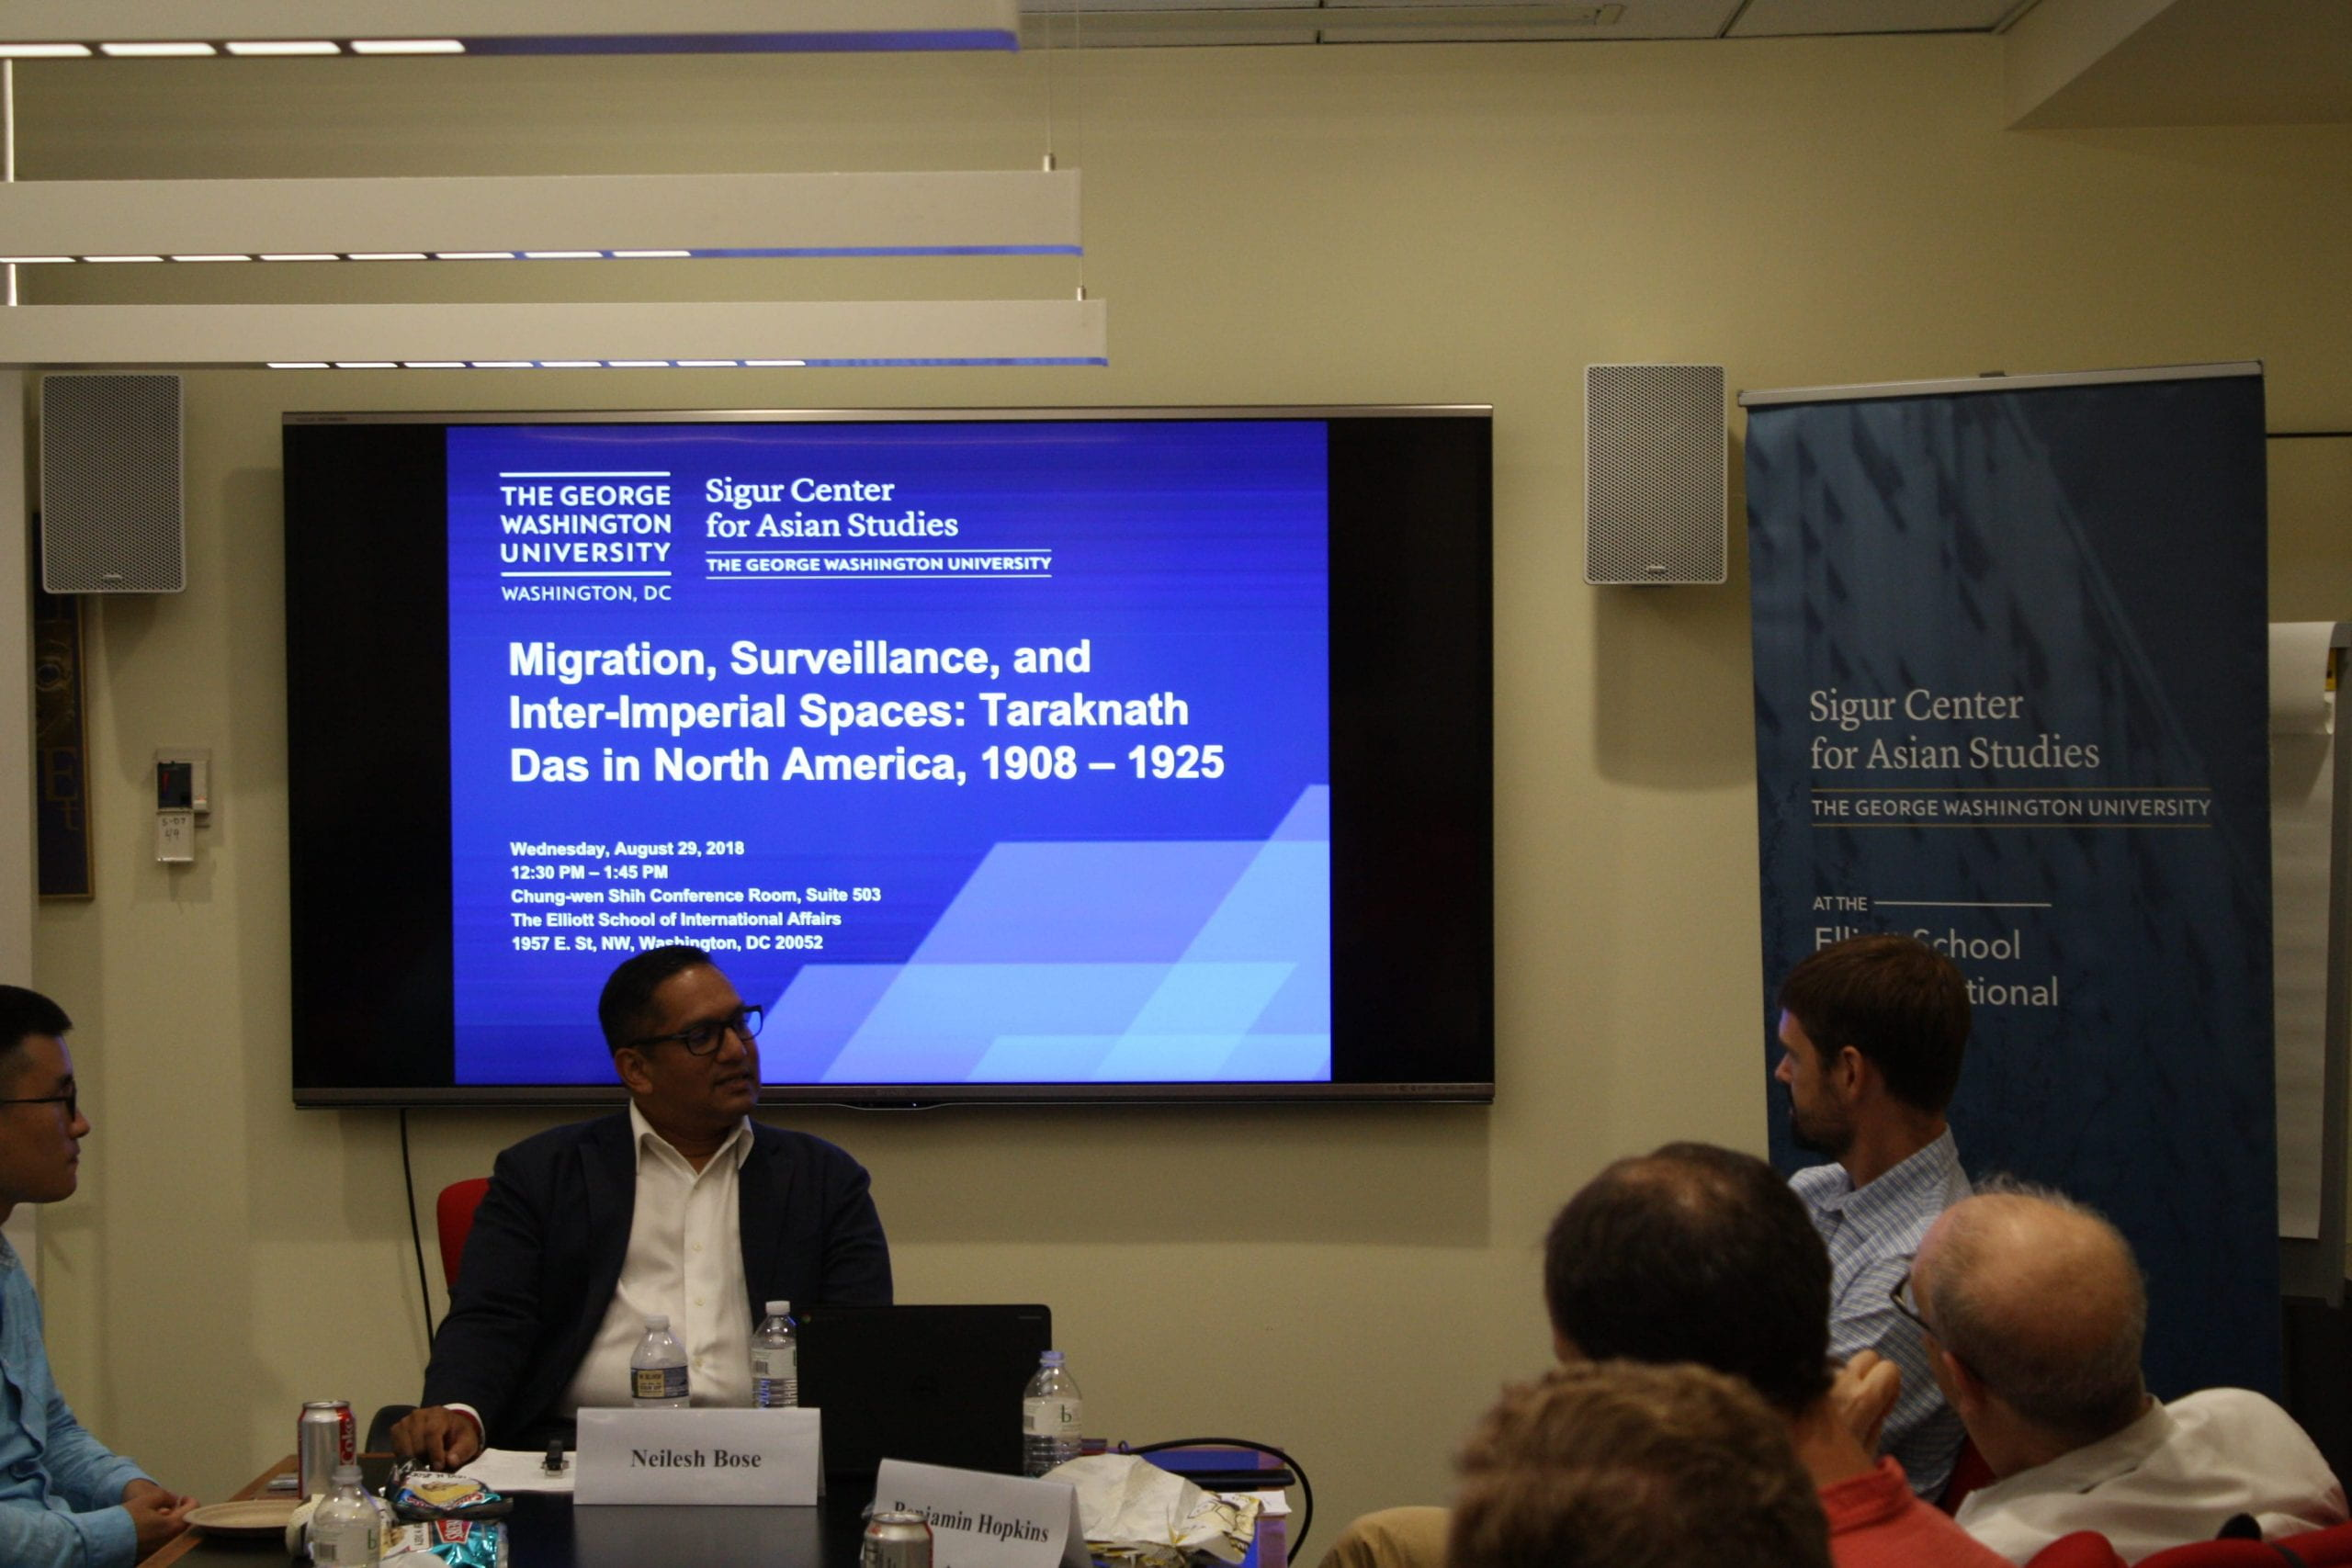 """Professor Neilesh Bose speaking at the public seminar event, """"Migration, Surveillance, and Inter-Imperial Spaces: Taraknath Das in North America, 1908–1925"""" on August 29, 2018."""